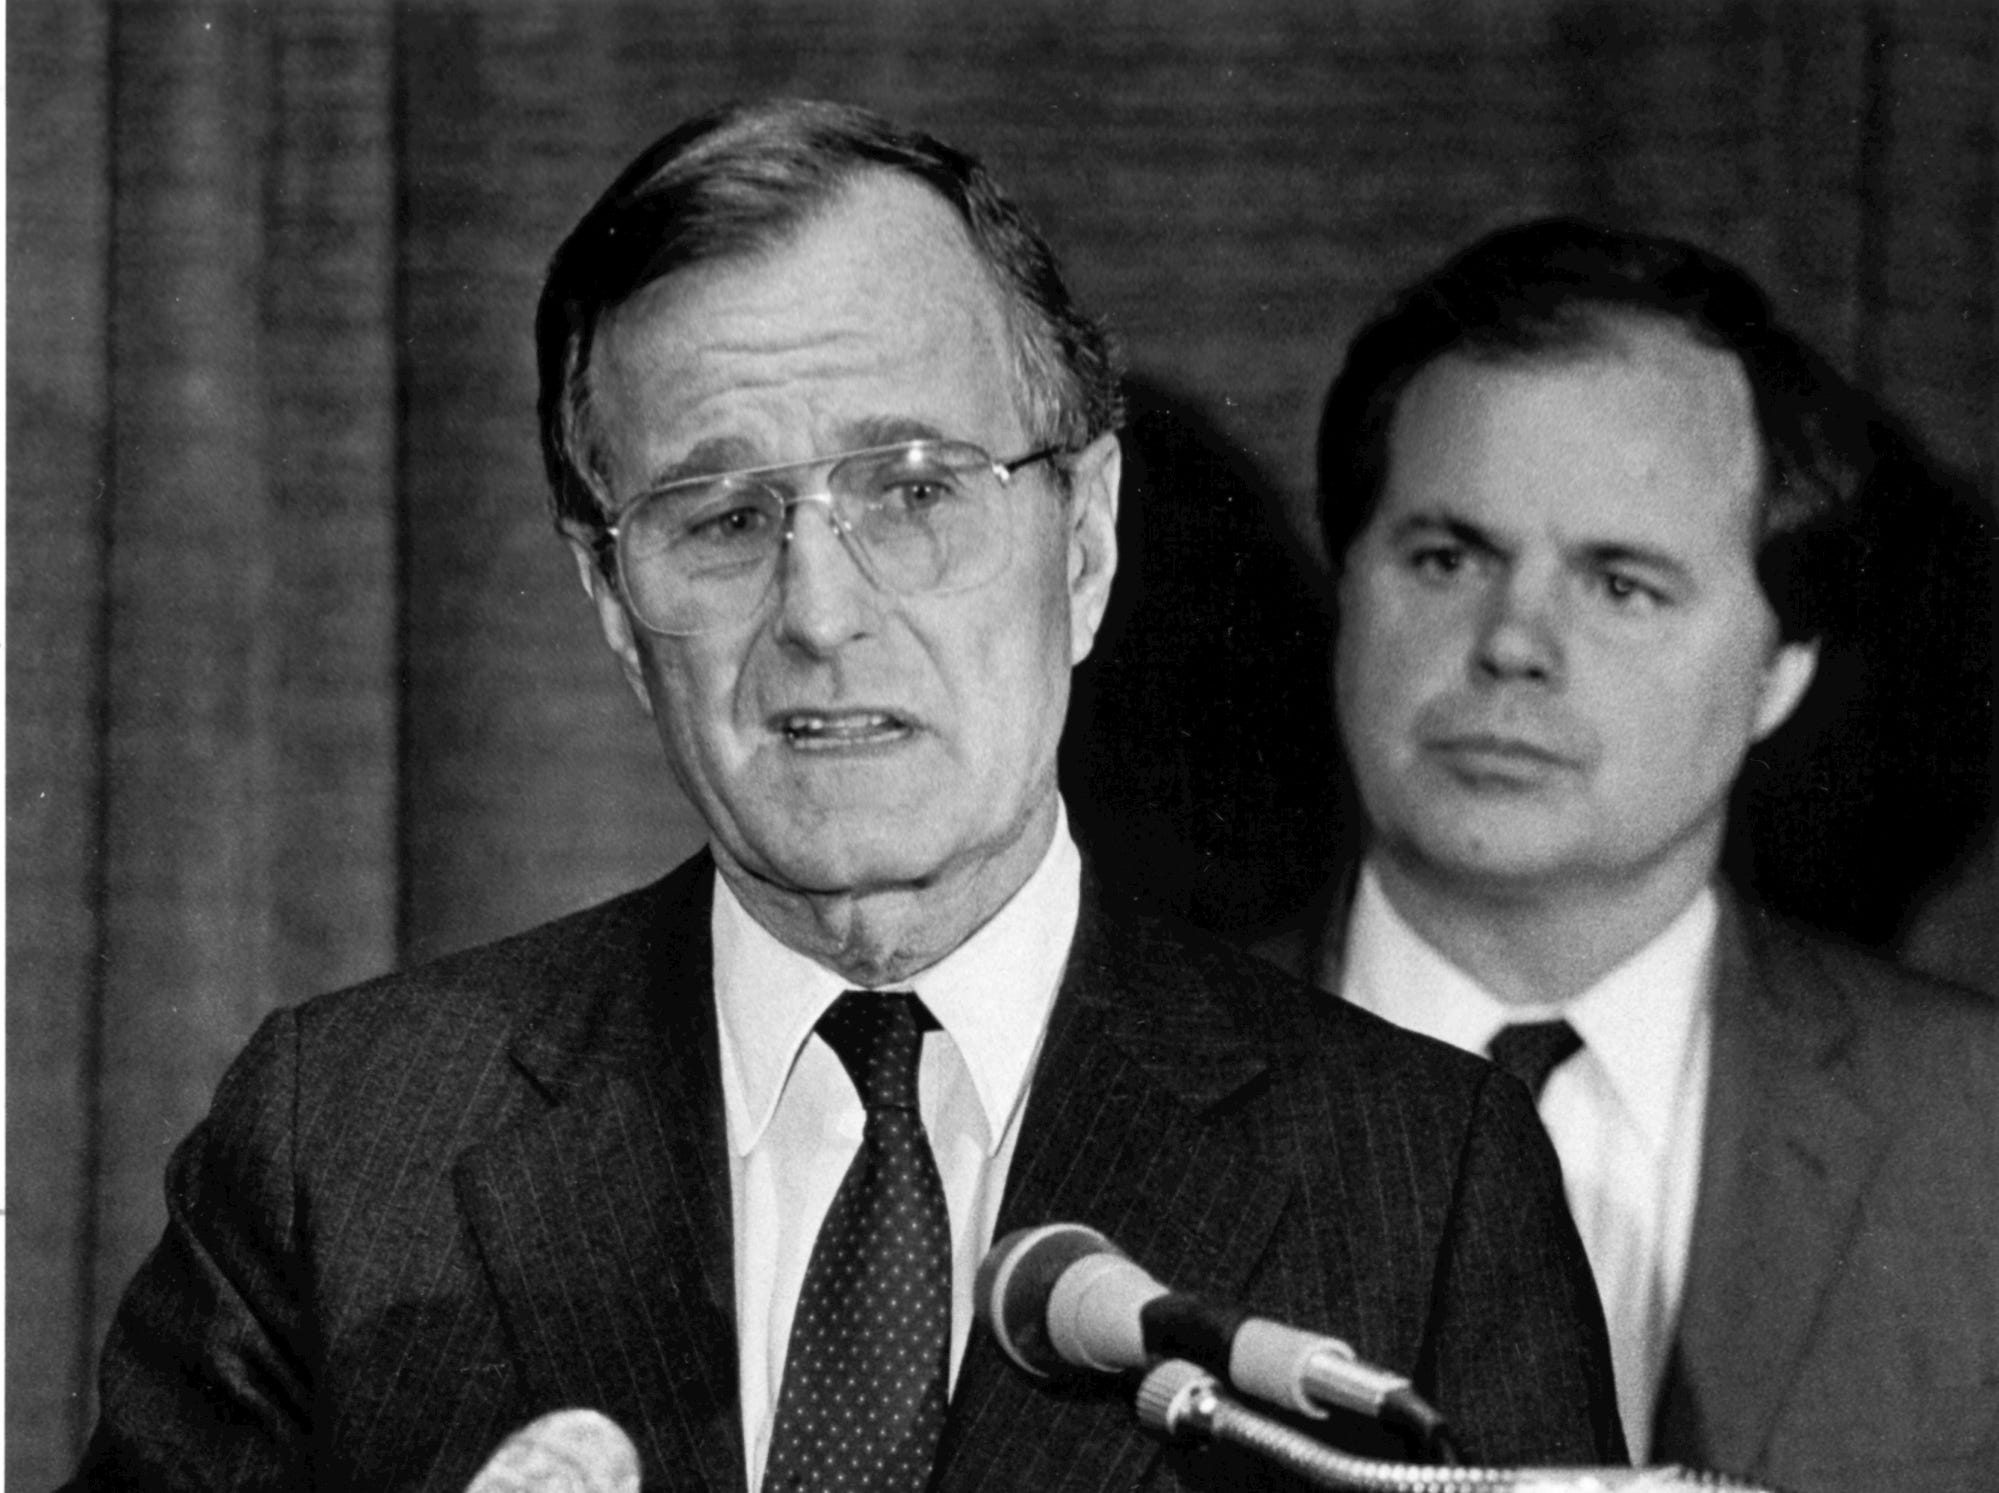 Oct. 23. 1984. Vice President George H. W. Bush. Post-Crescent photo by Mark Courtney.